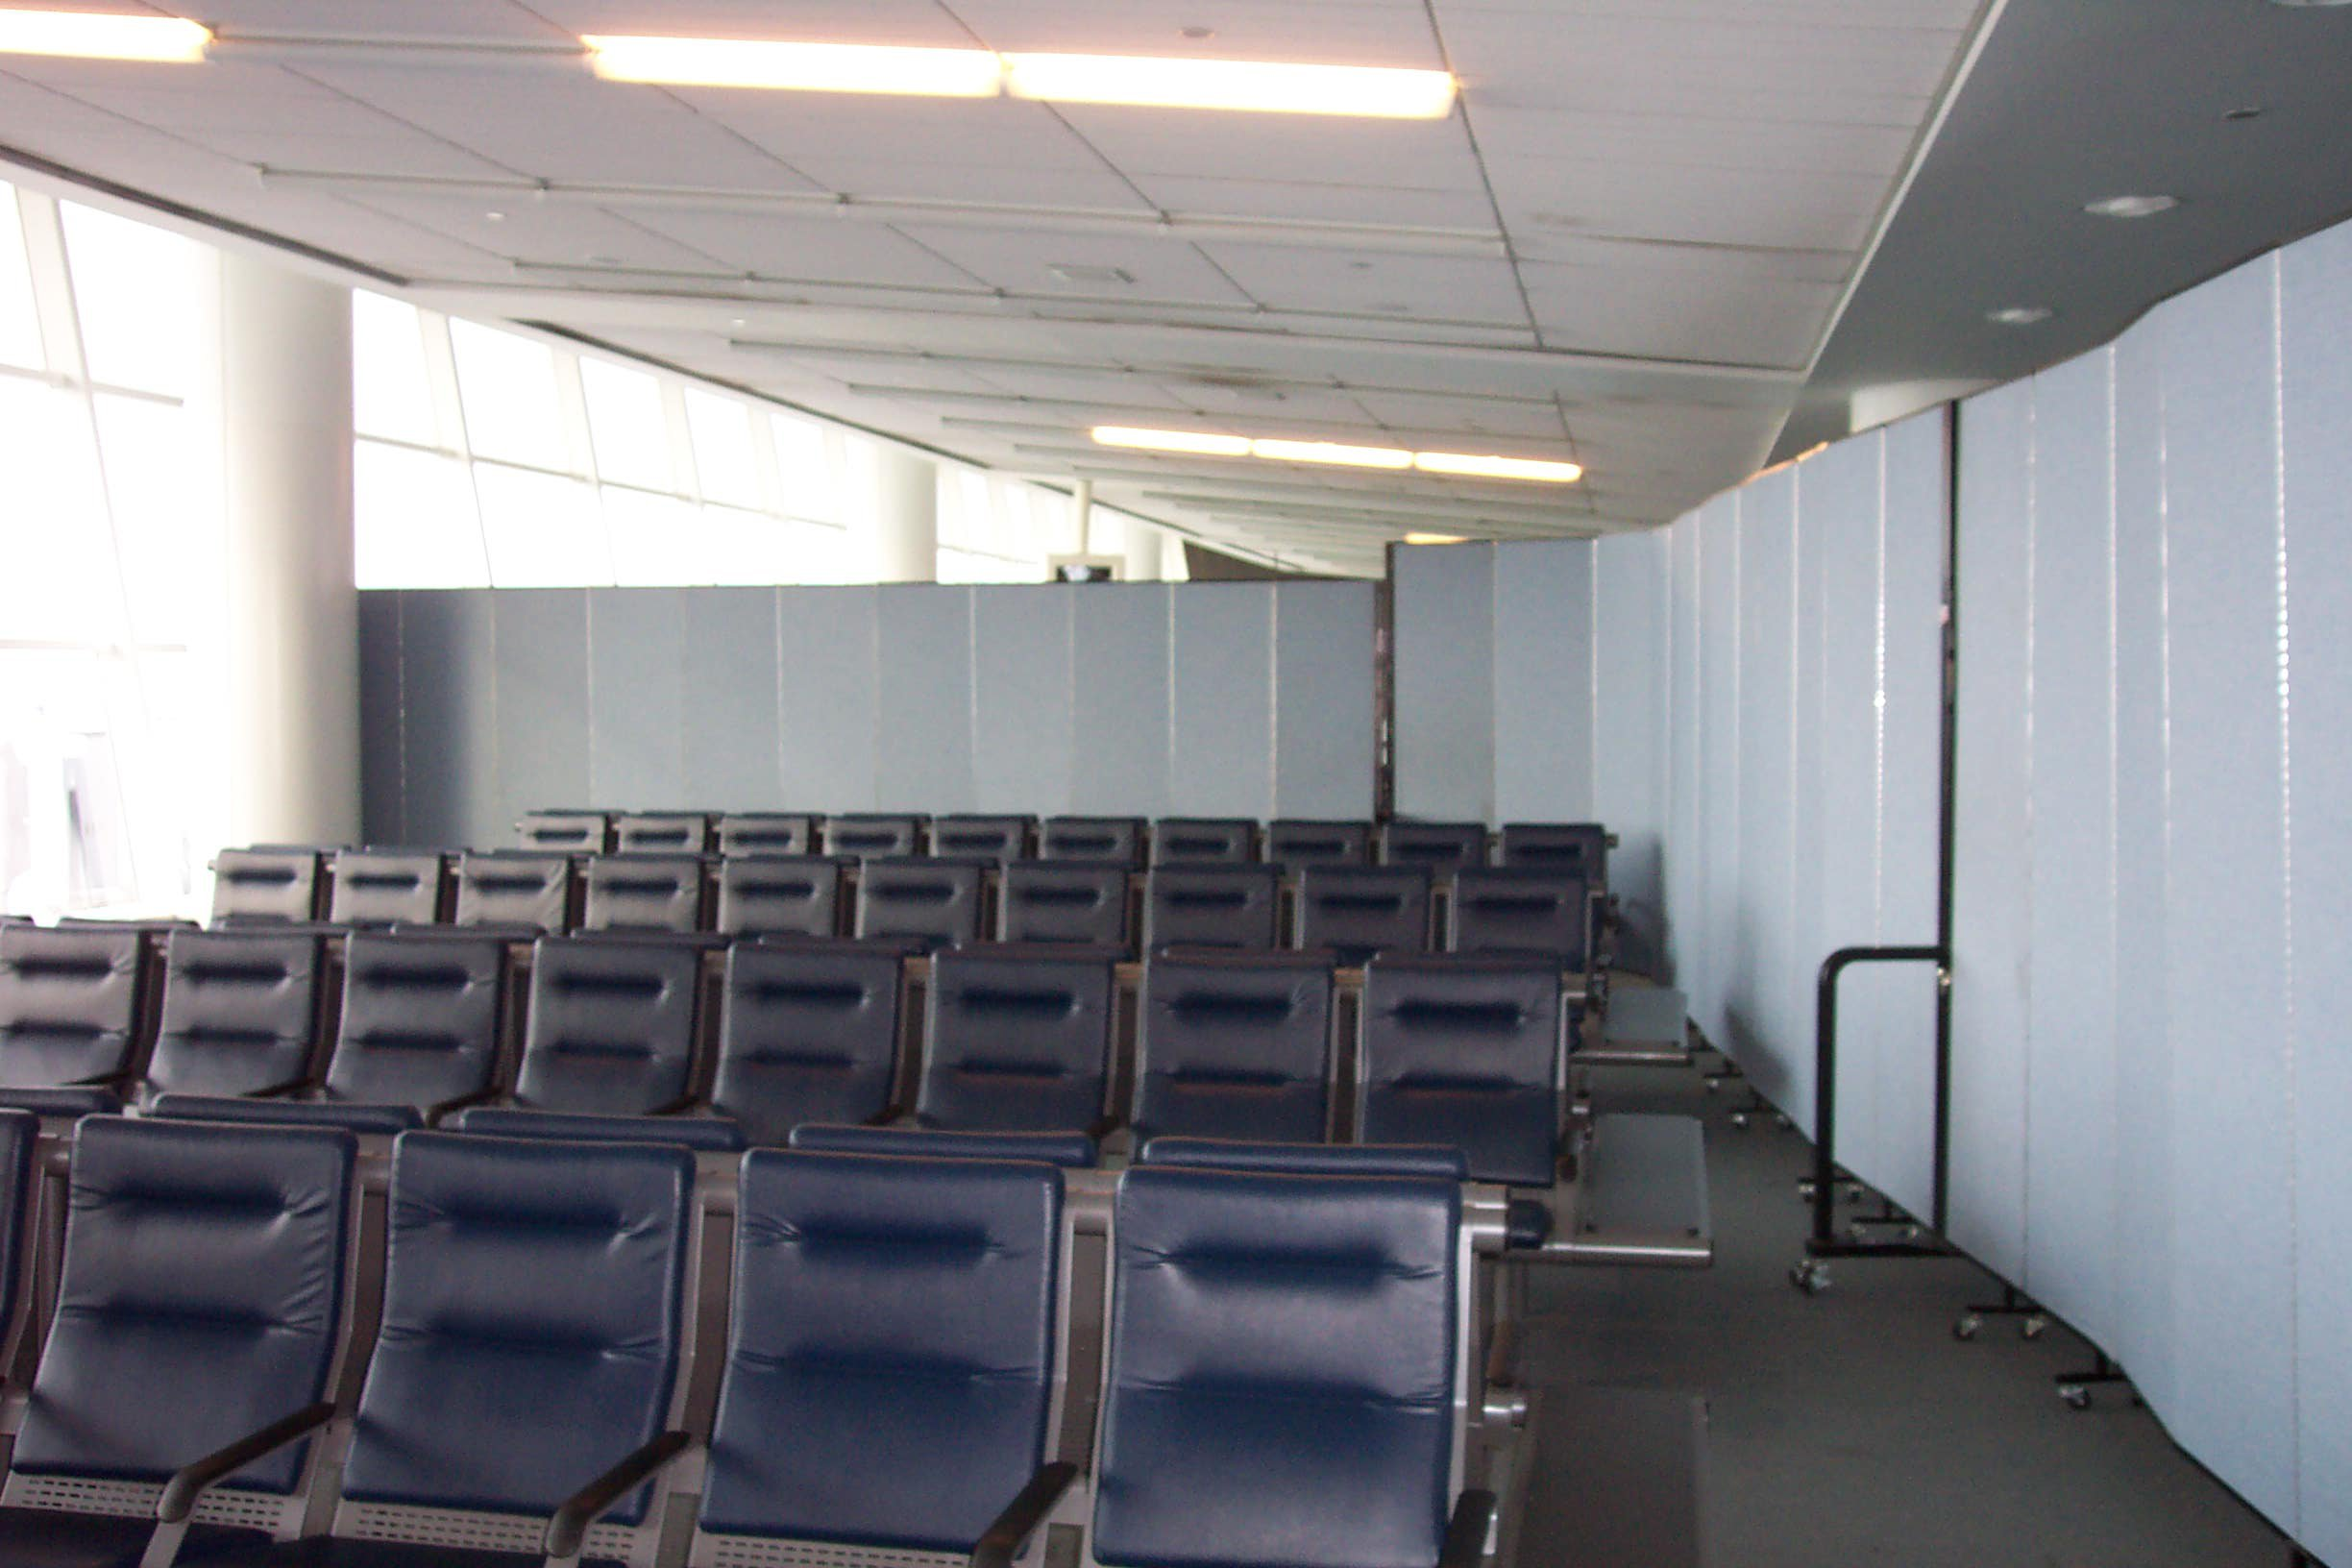 Room dividers surround rows of chairs in an airport waiting area